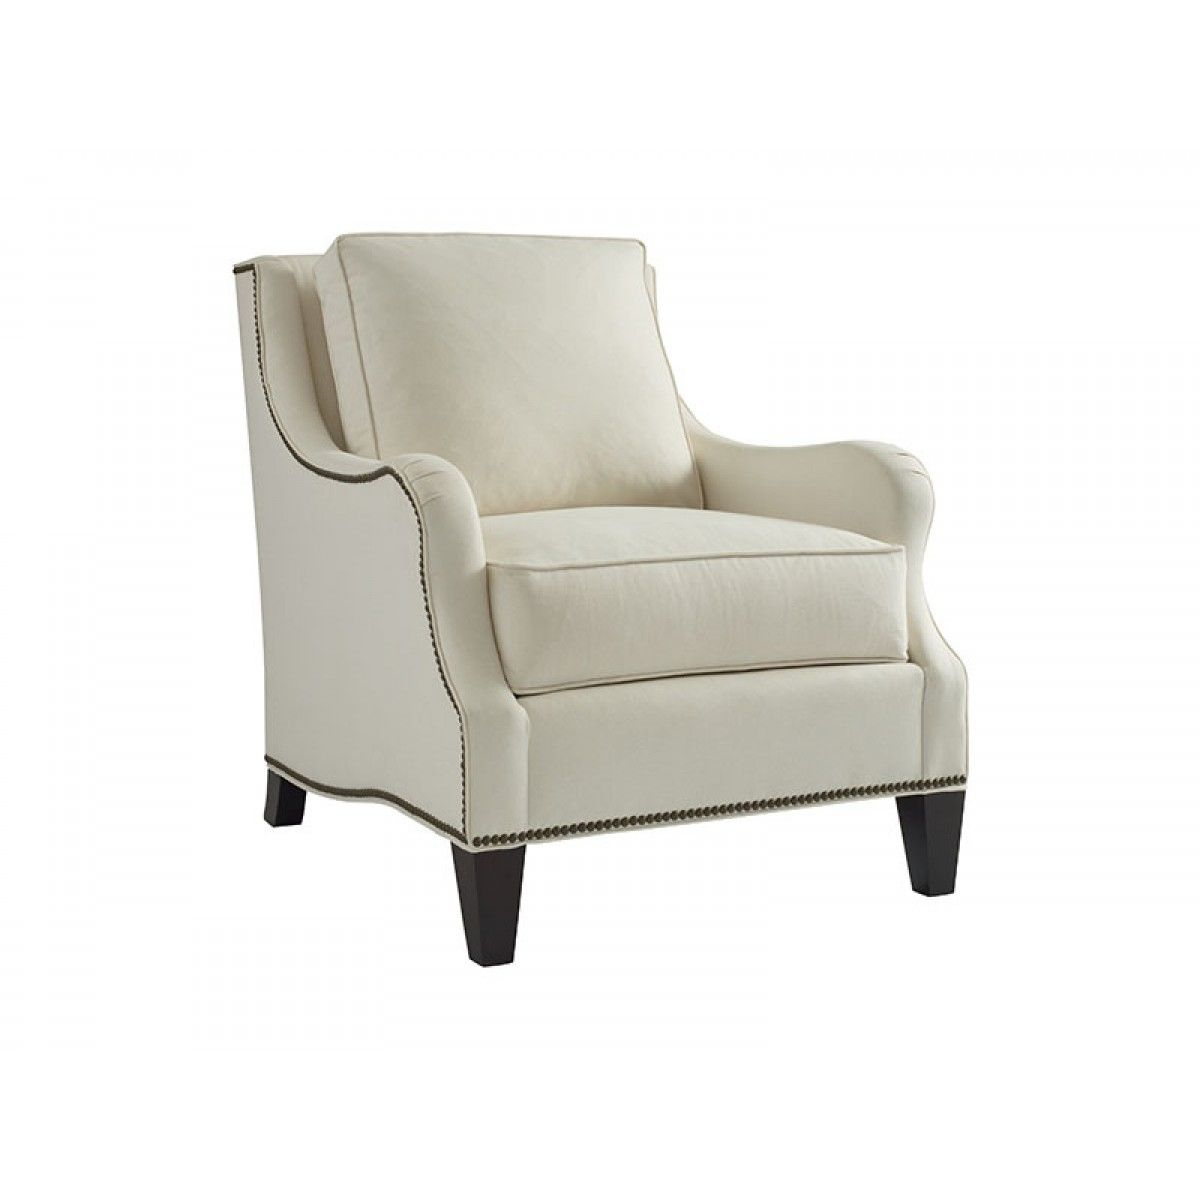 Thomasville Upholstery/leather Aiden Chair | Furniture | Pinterest Regarding Aidan Ii Swivel Accent Chairs (View 10 of 20)